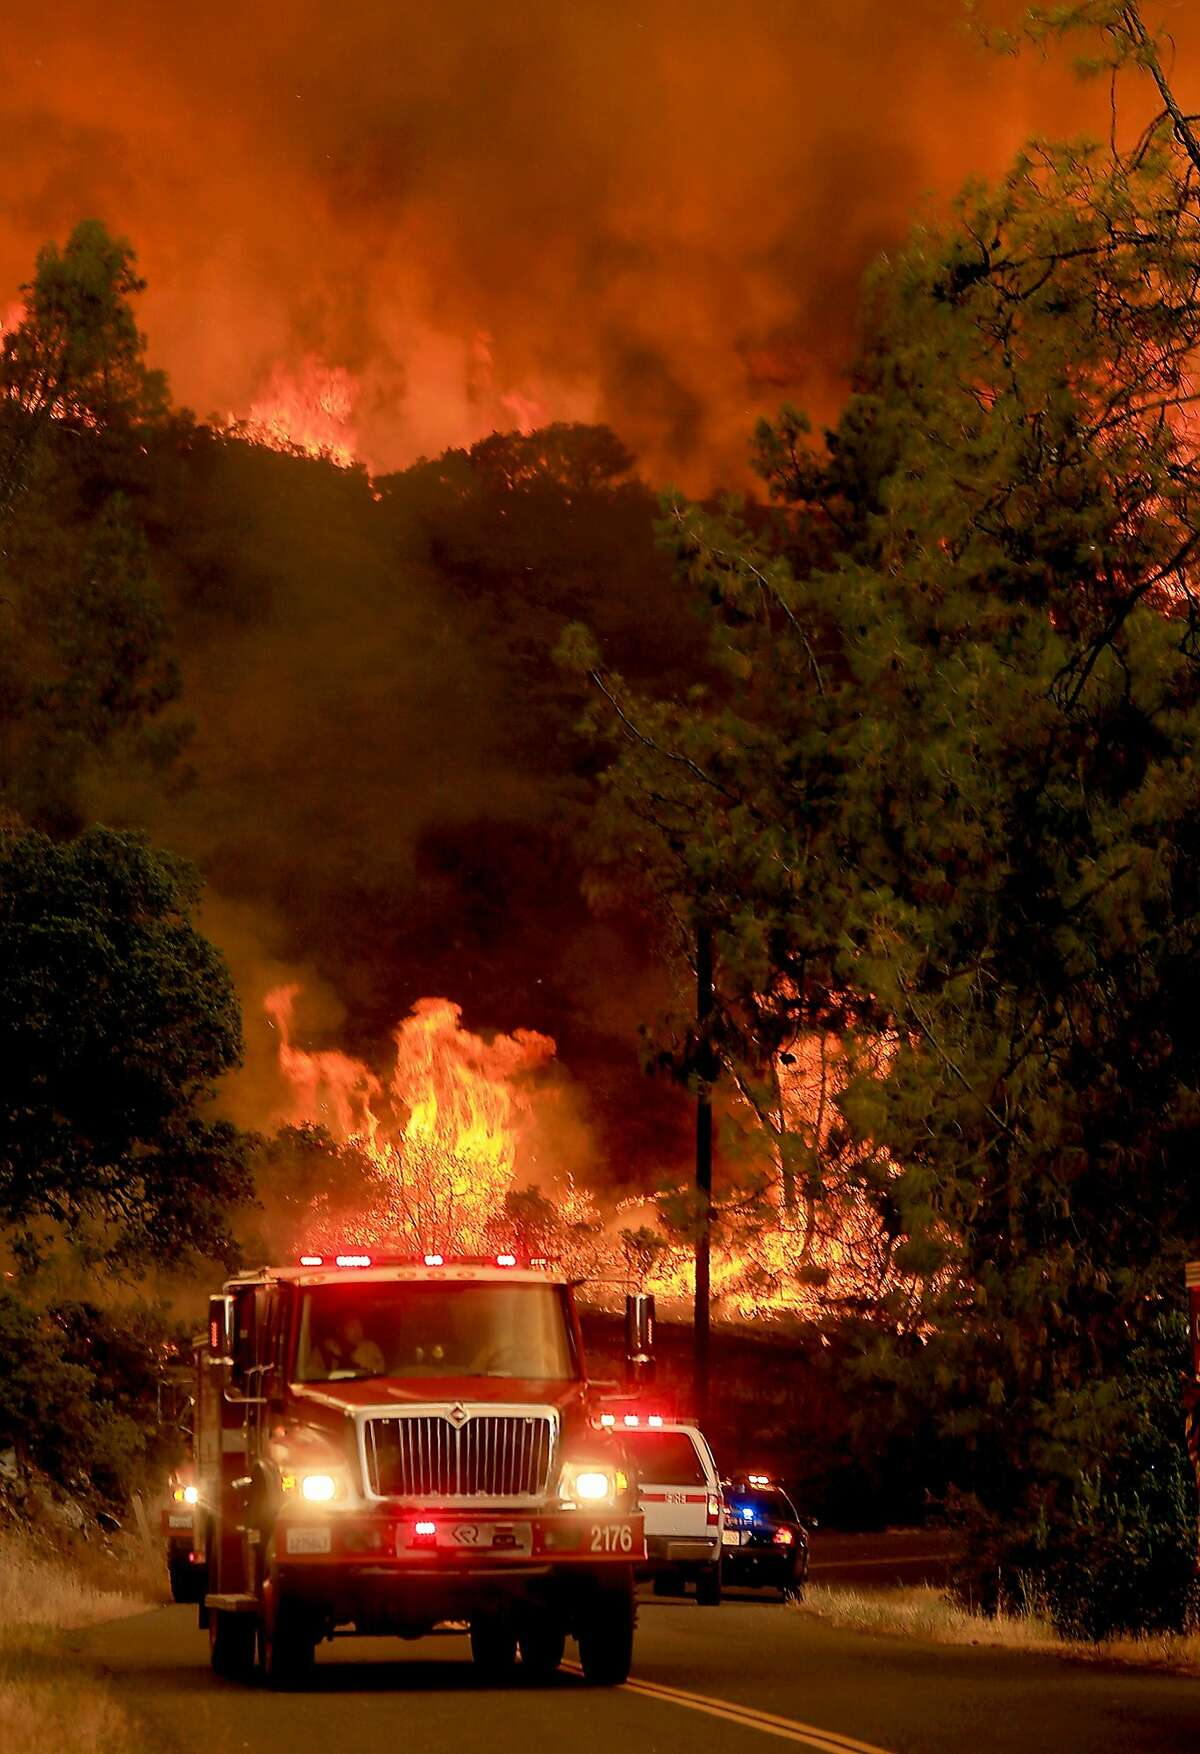 Fire personnel pull back from a wall of flames as it jumps Butts Canyon Road and Snell Valley Road, Tuesday, July 1, 2014, outside Middletown, Calif., near the border between Lake and Napa counties. By early evening 140 homes were evacuated and 2,500 acres were burned. (AP Photo/The Press Democrat, Kent Porter)